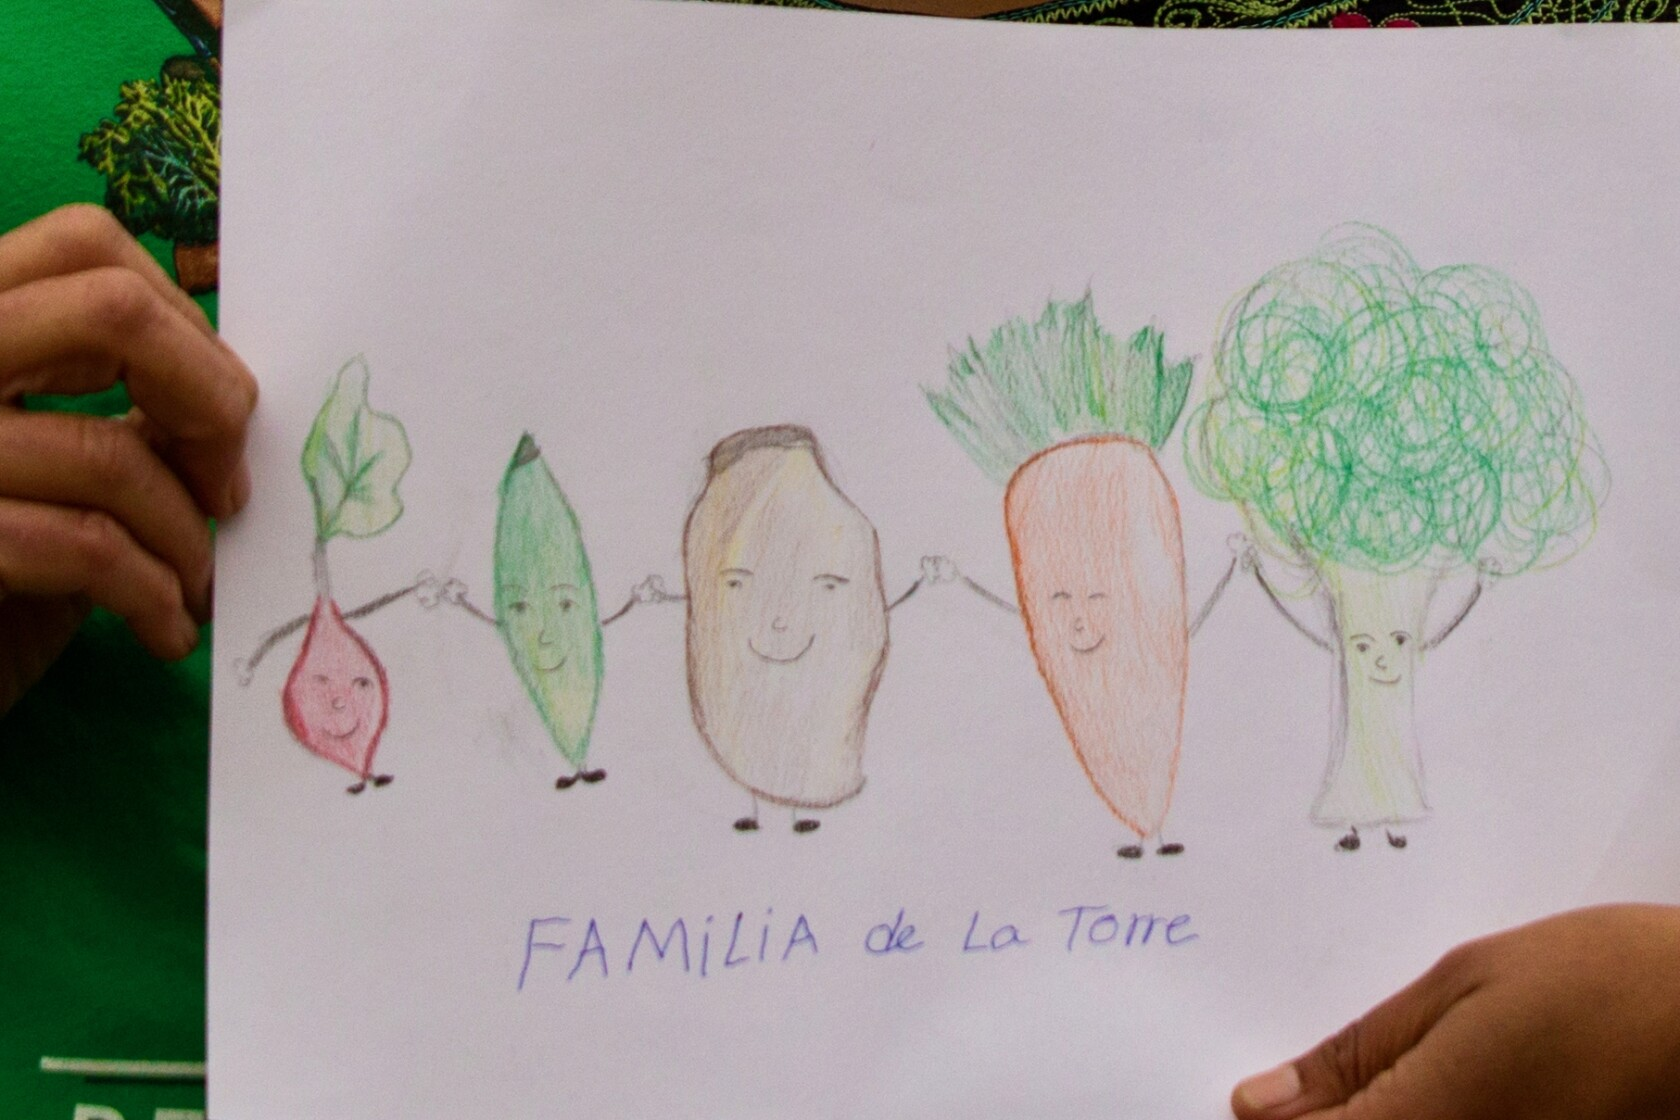 Family portraits drawn by children from the Esperanza Community Farms